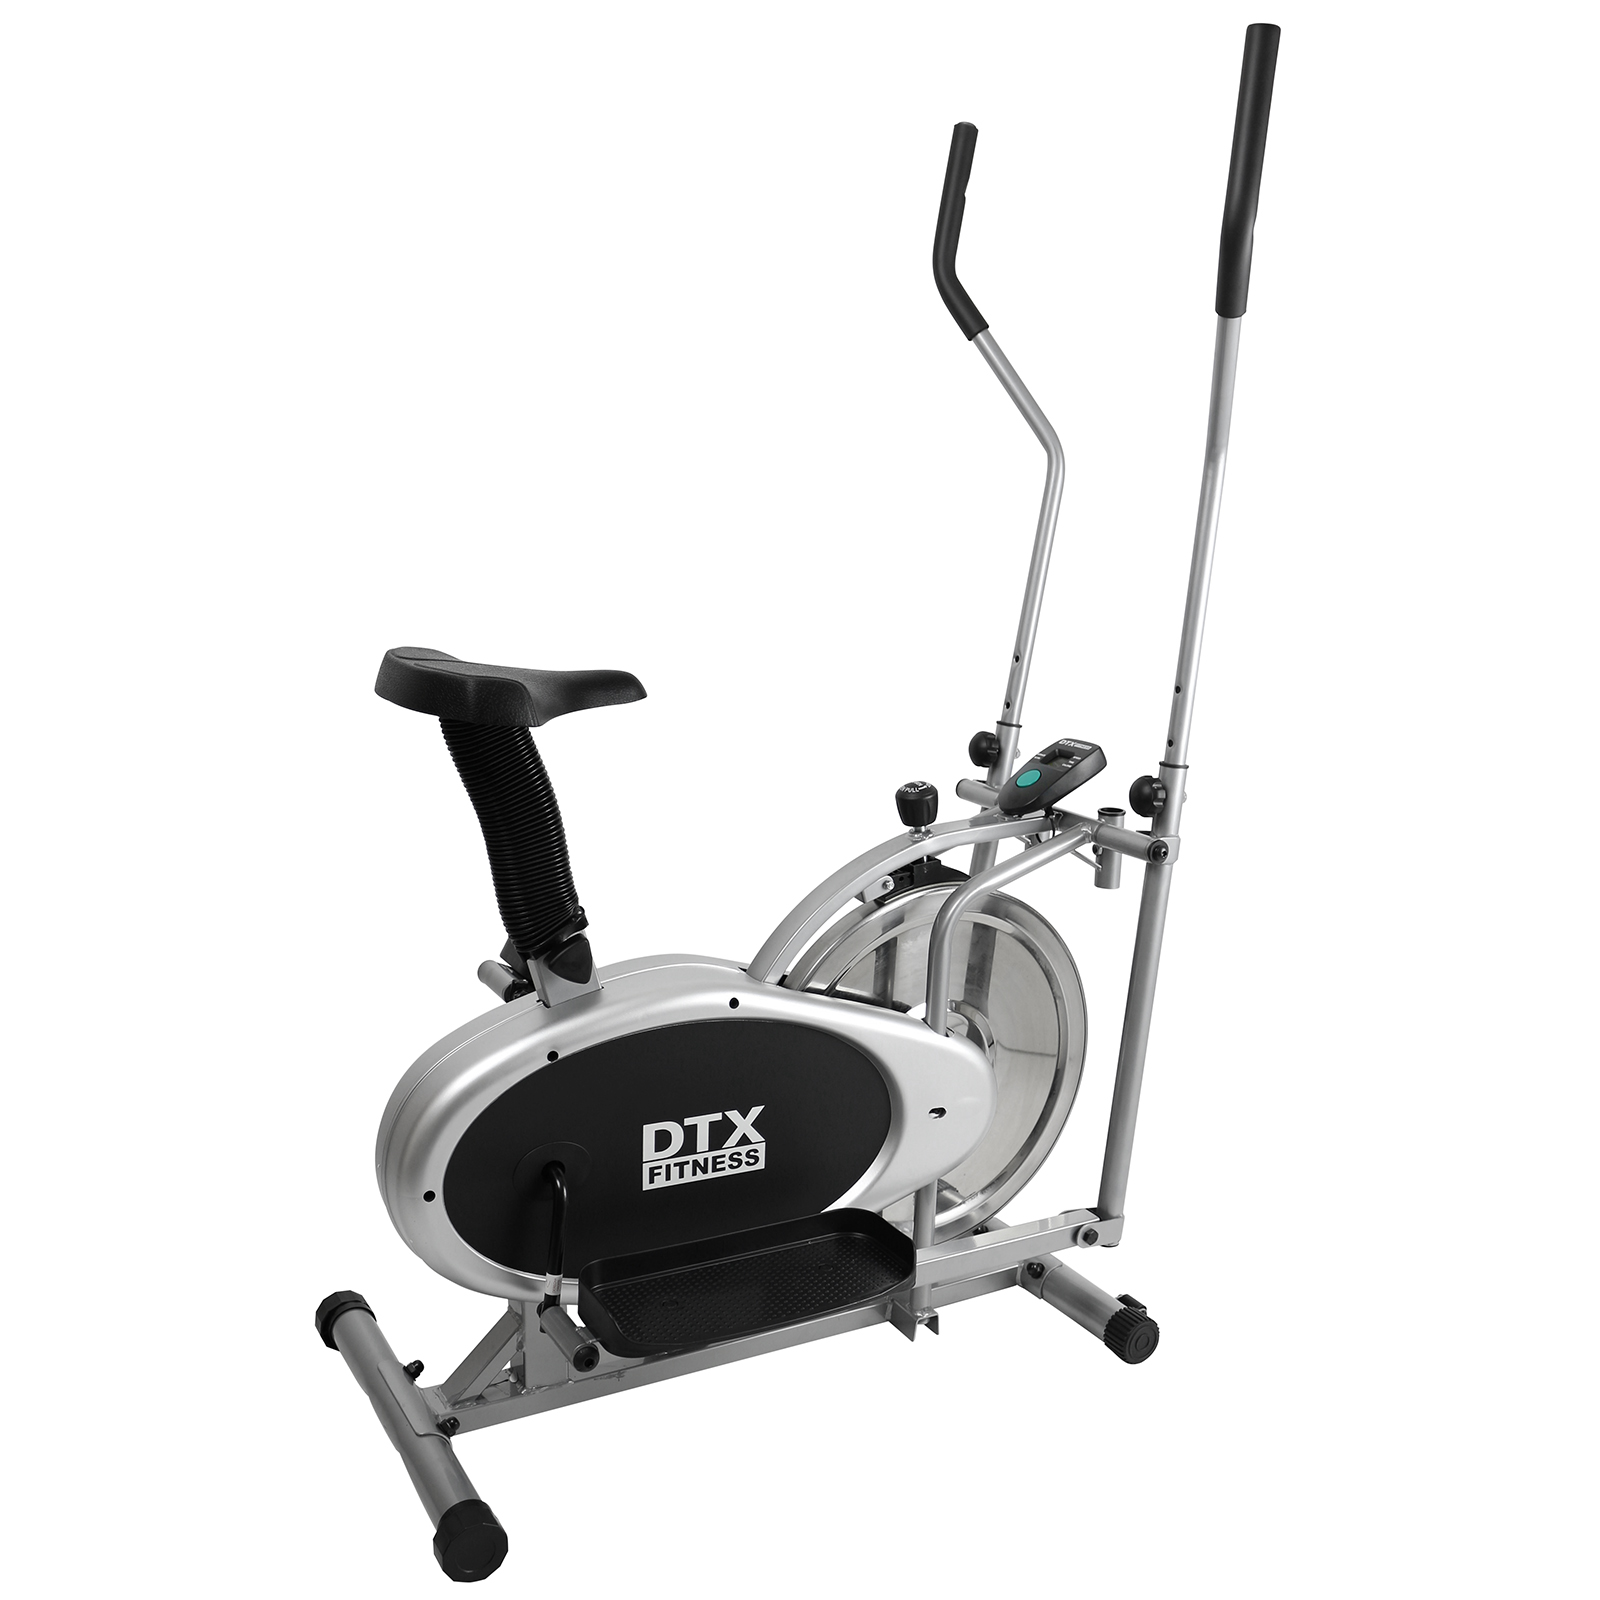 SALE DTX Fitness 2 In 1 Elliptical Cross Trainer/Exercise